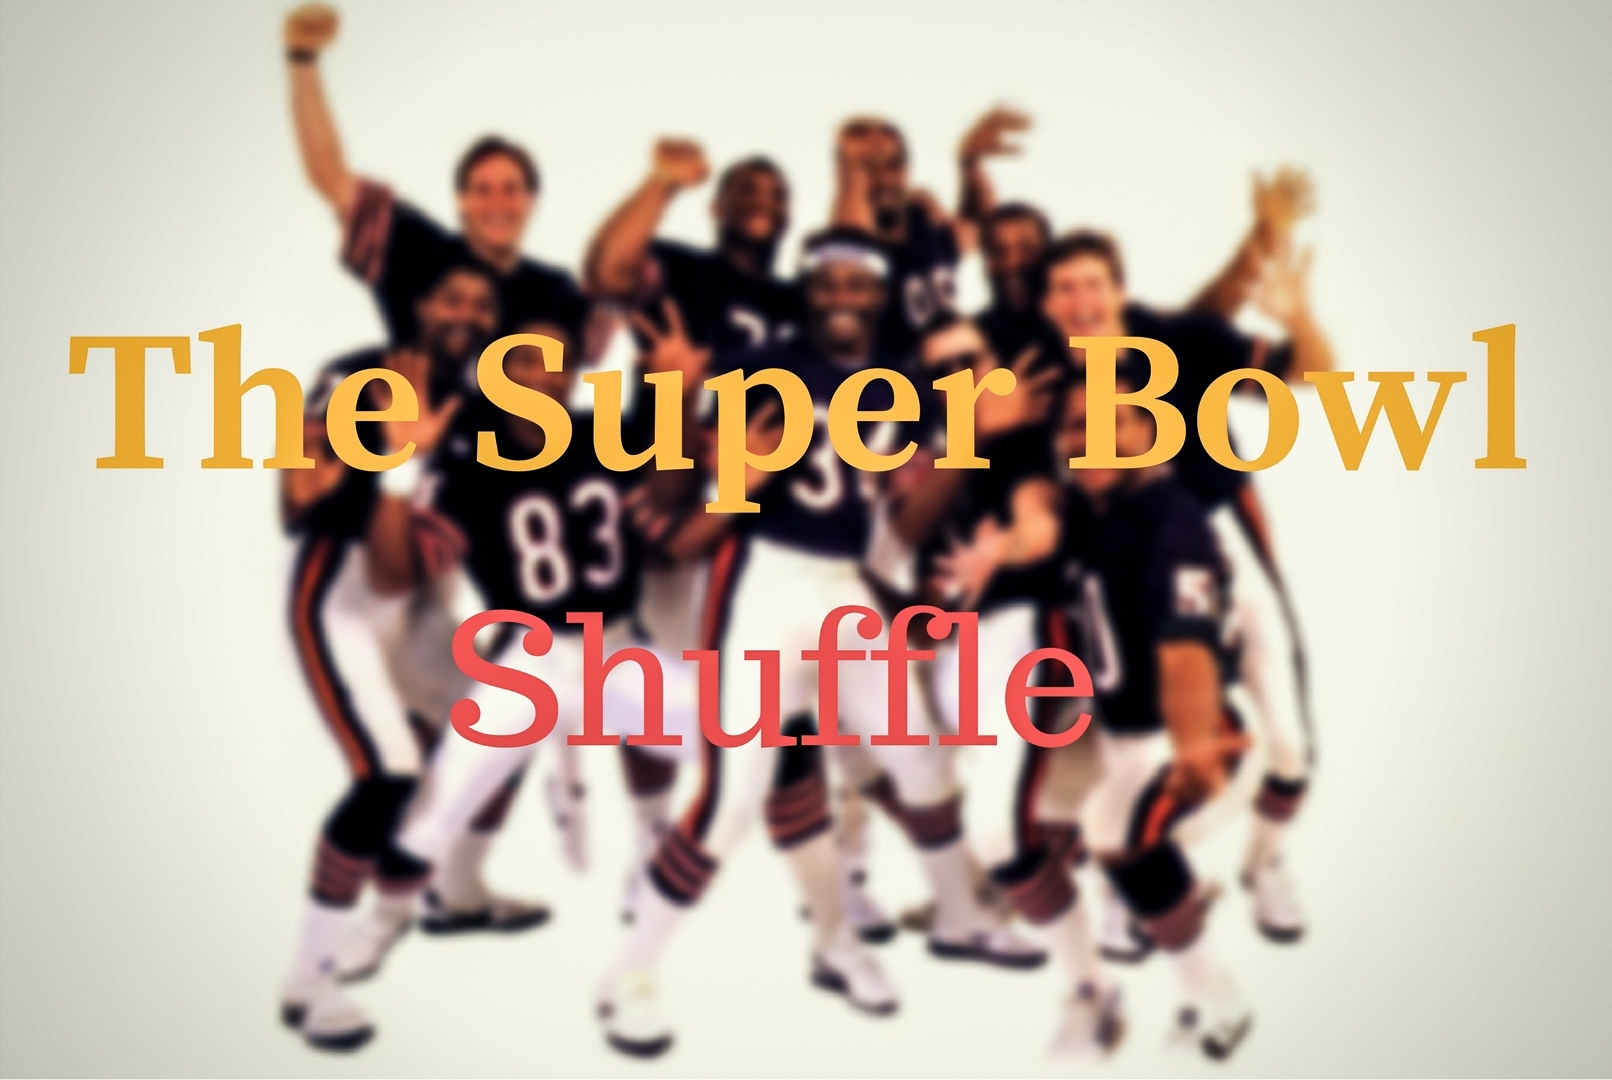 Chicago4You   Chicago Bears: The Super Bowl Shuffle in The Super Bowl Shuffle